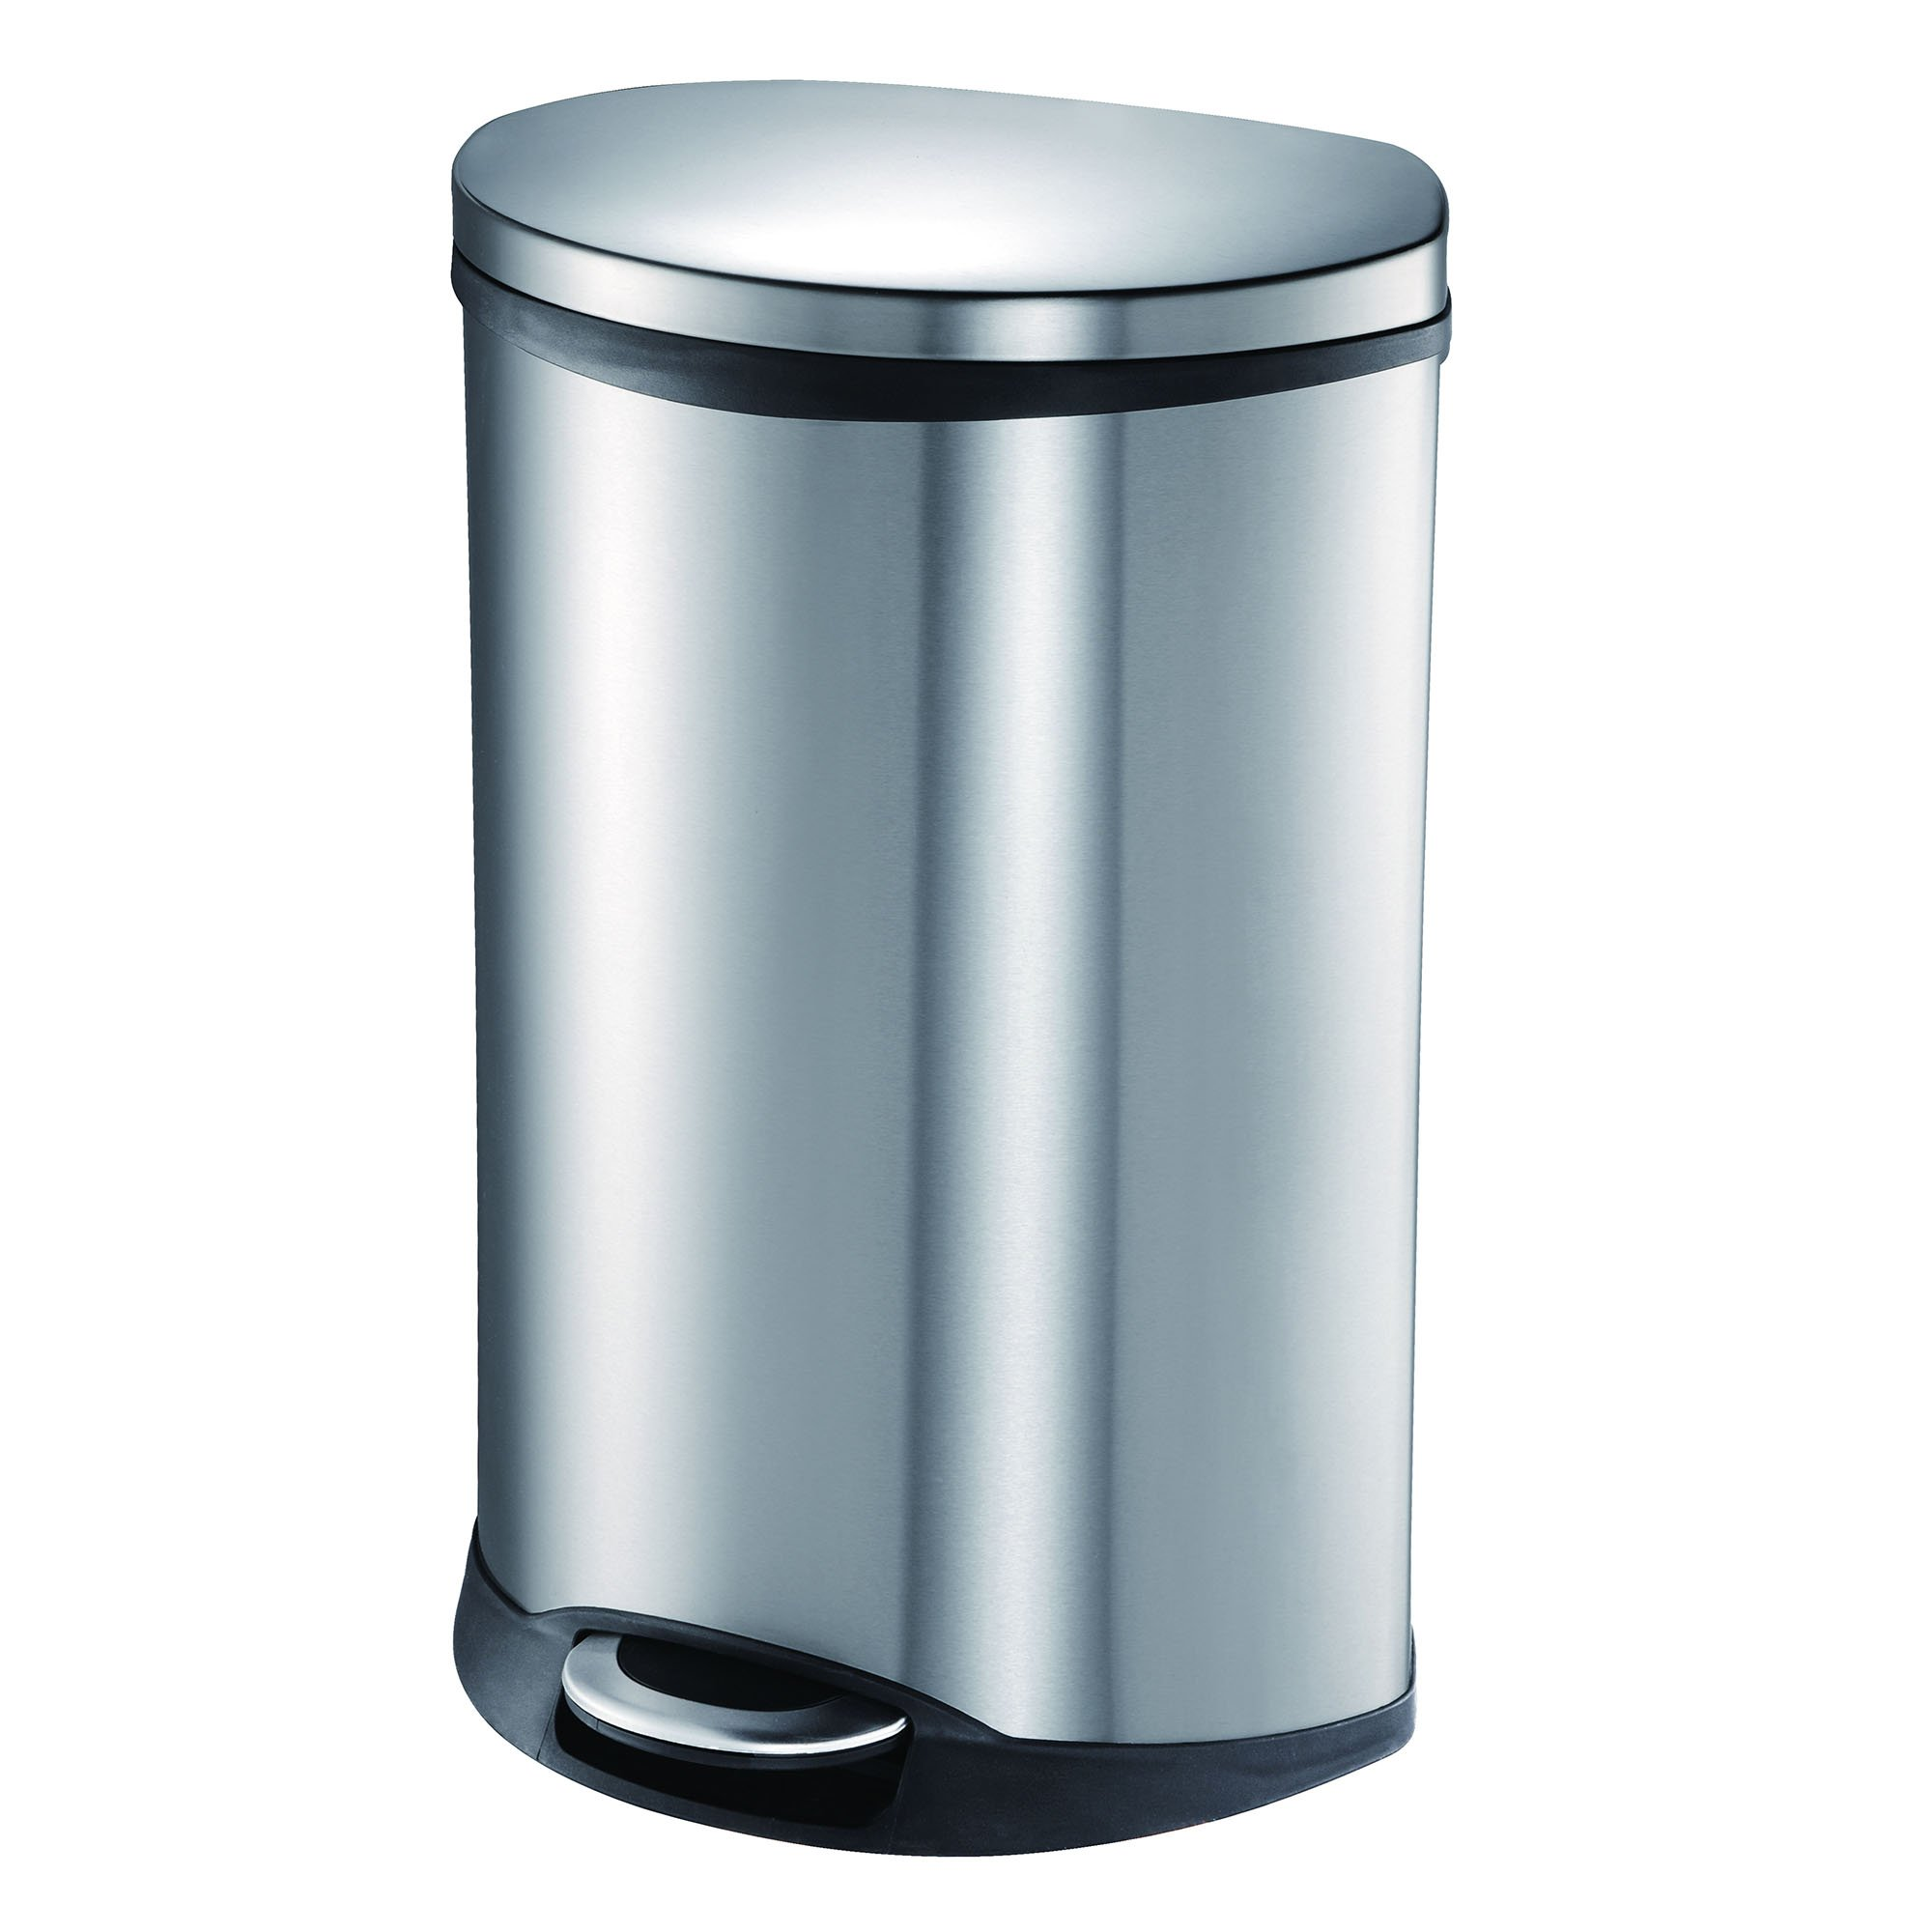 EKO 92185-1 Oblong Shell 13 Gallon Stainless Steel Step Trash Can with Lid | 50 Liter Metal Waste Bin